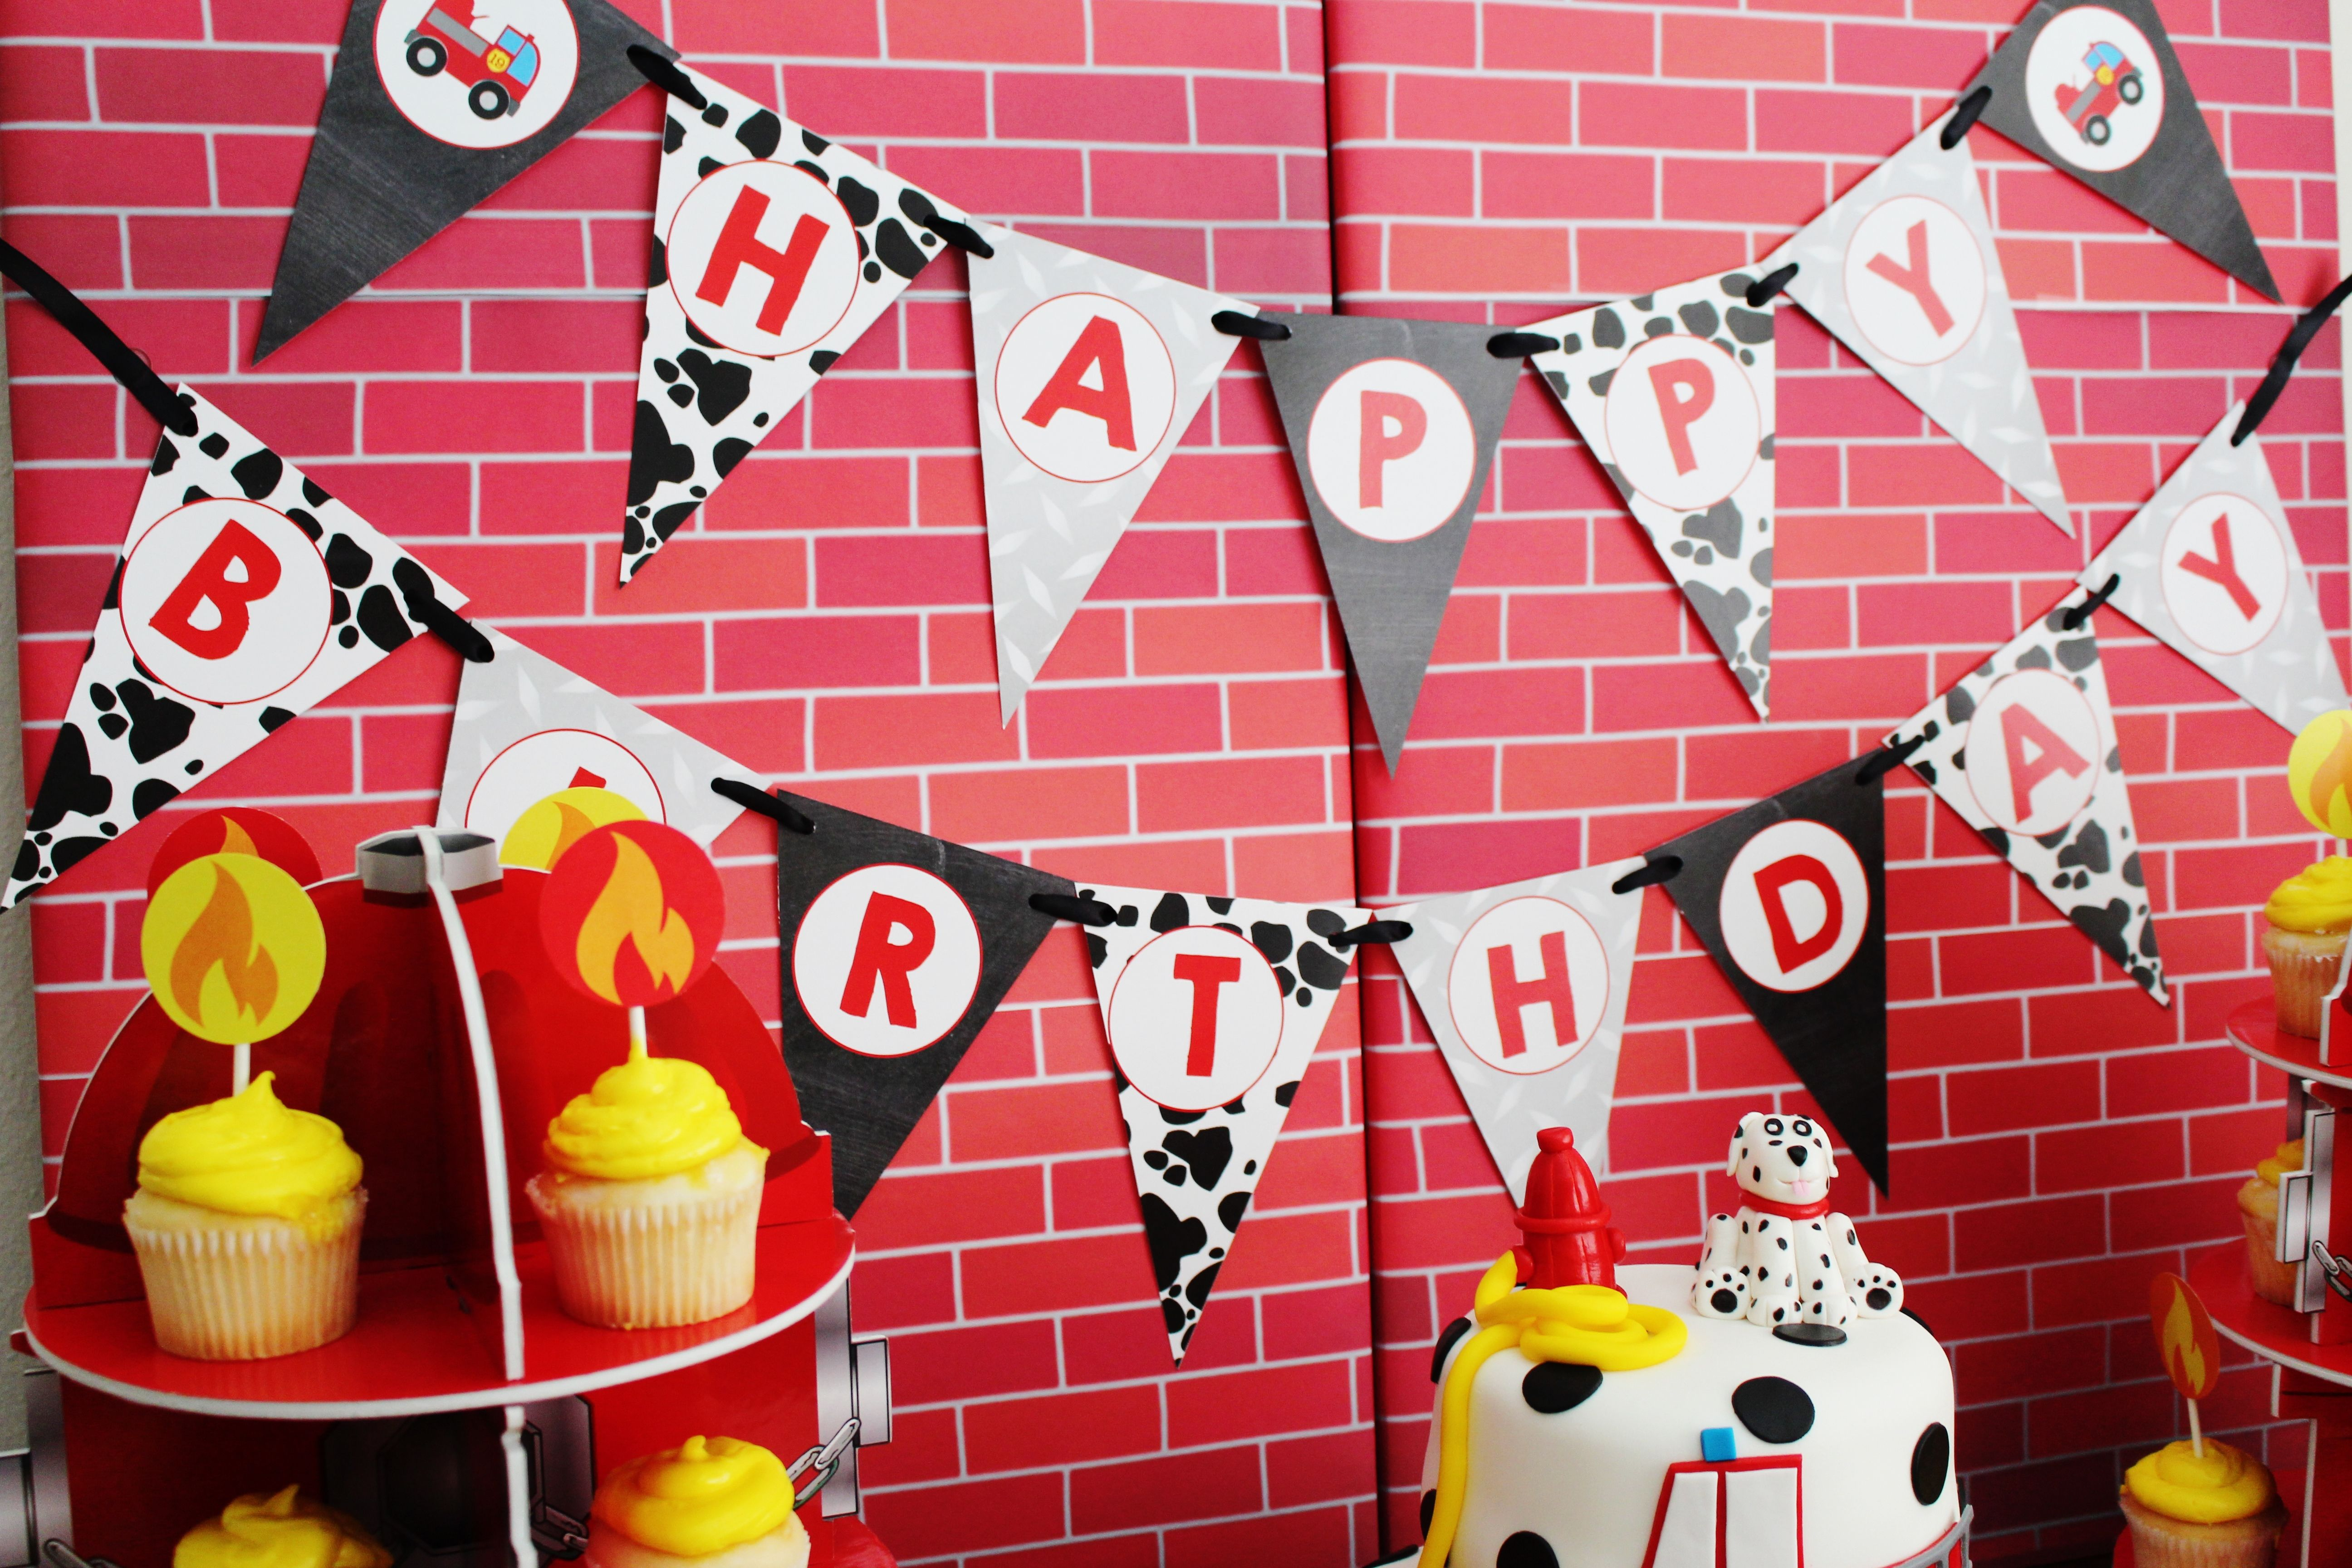 Fireman party theme banner; firetruck party theme banner | Party ...